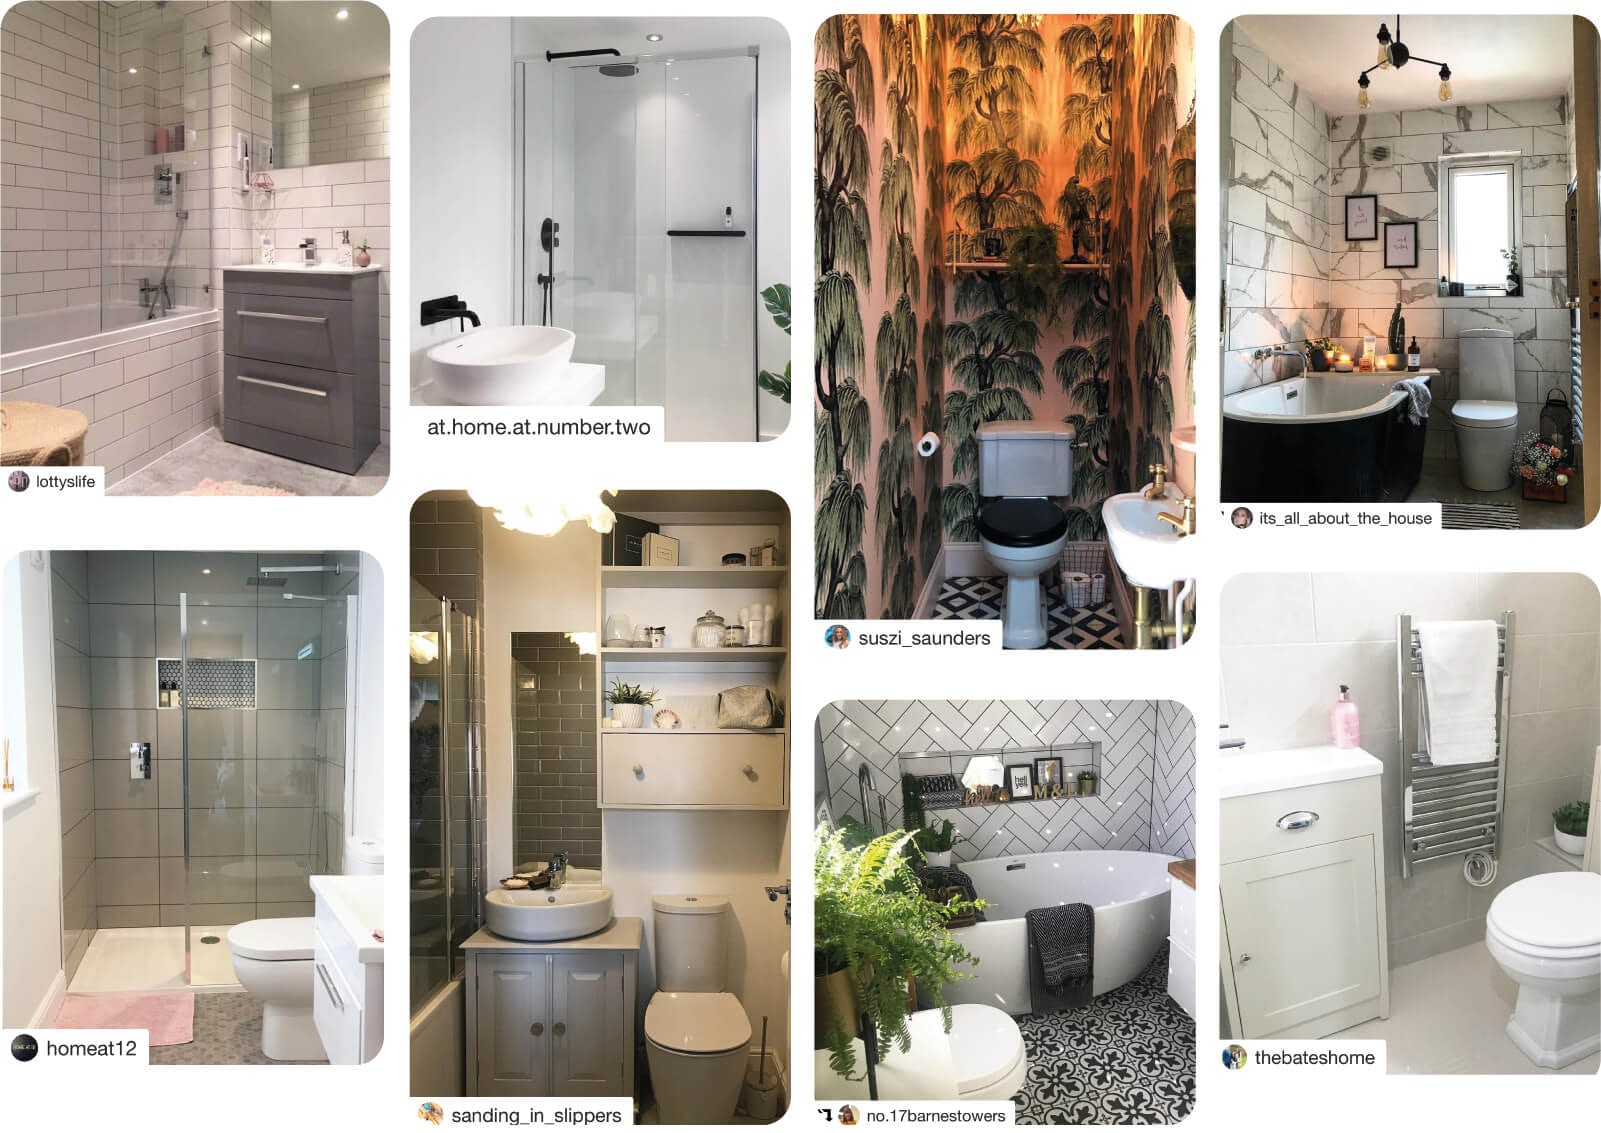 Small bathrooms by VictoriaPlum.com customers